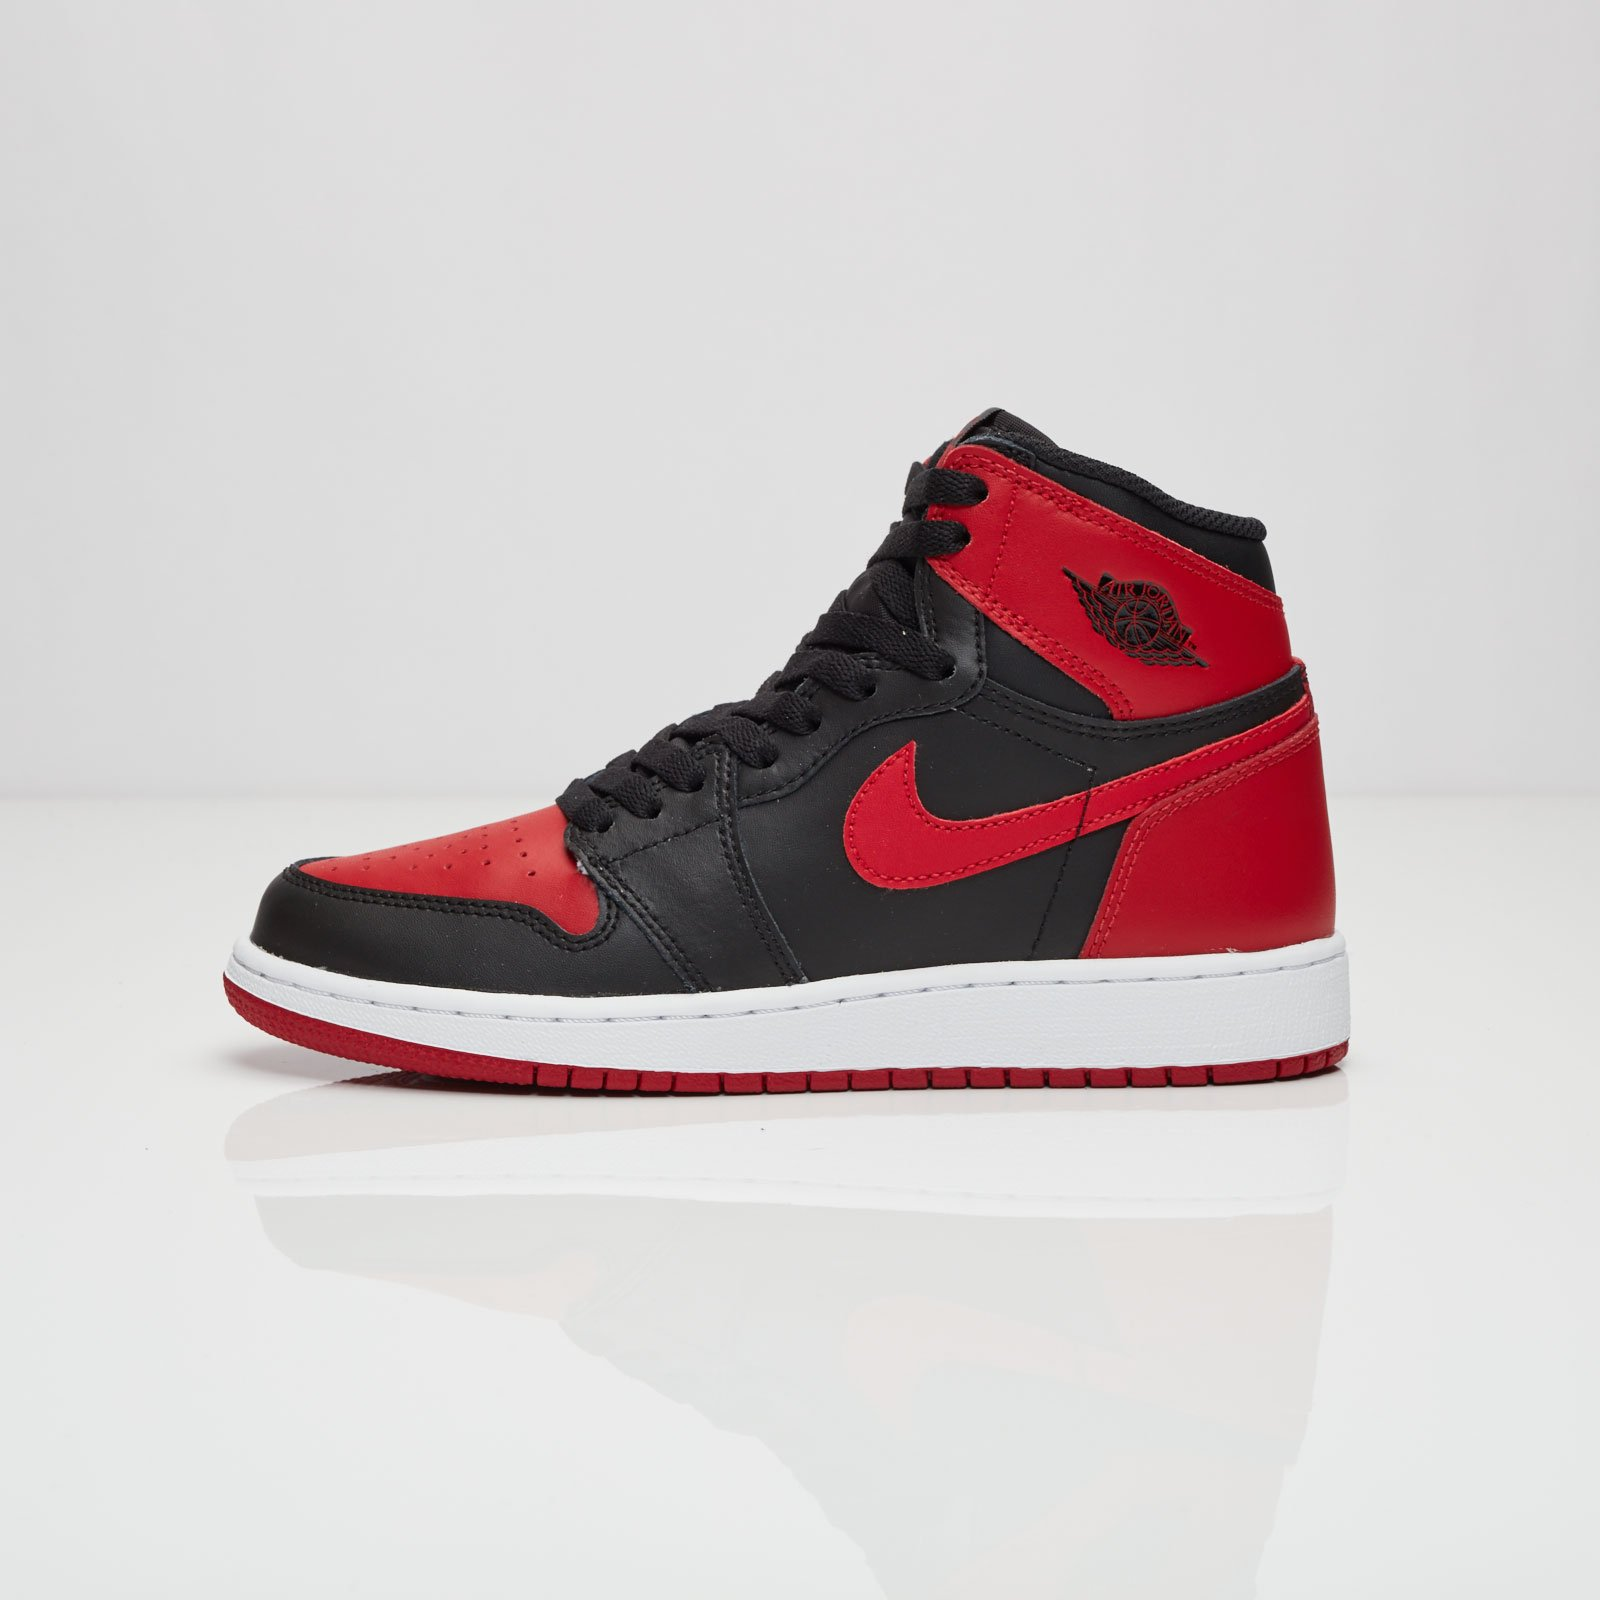 quality design 38d35 99dbf Jordan Brand Air Jordan 1 Retro High OG (GS) - 6. Close